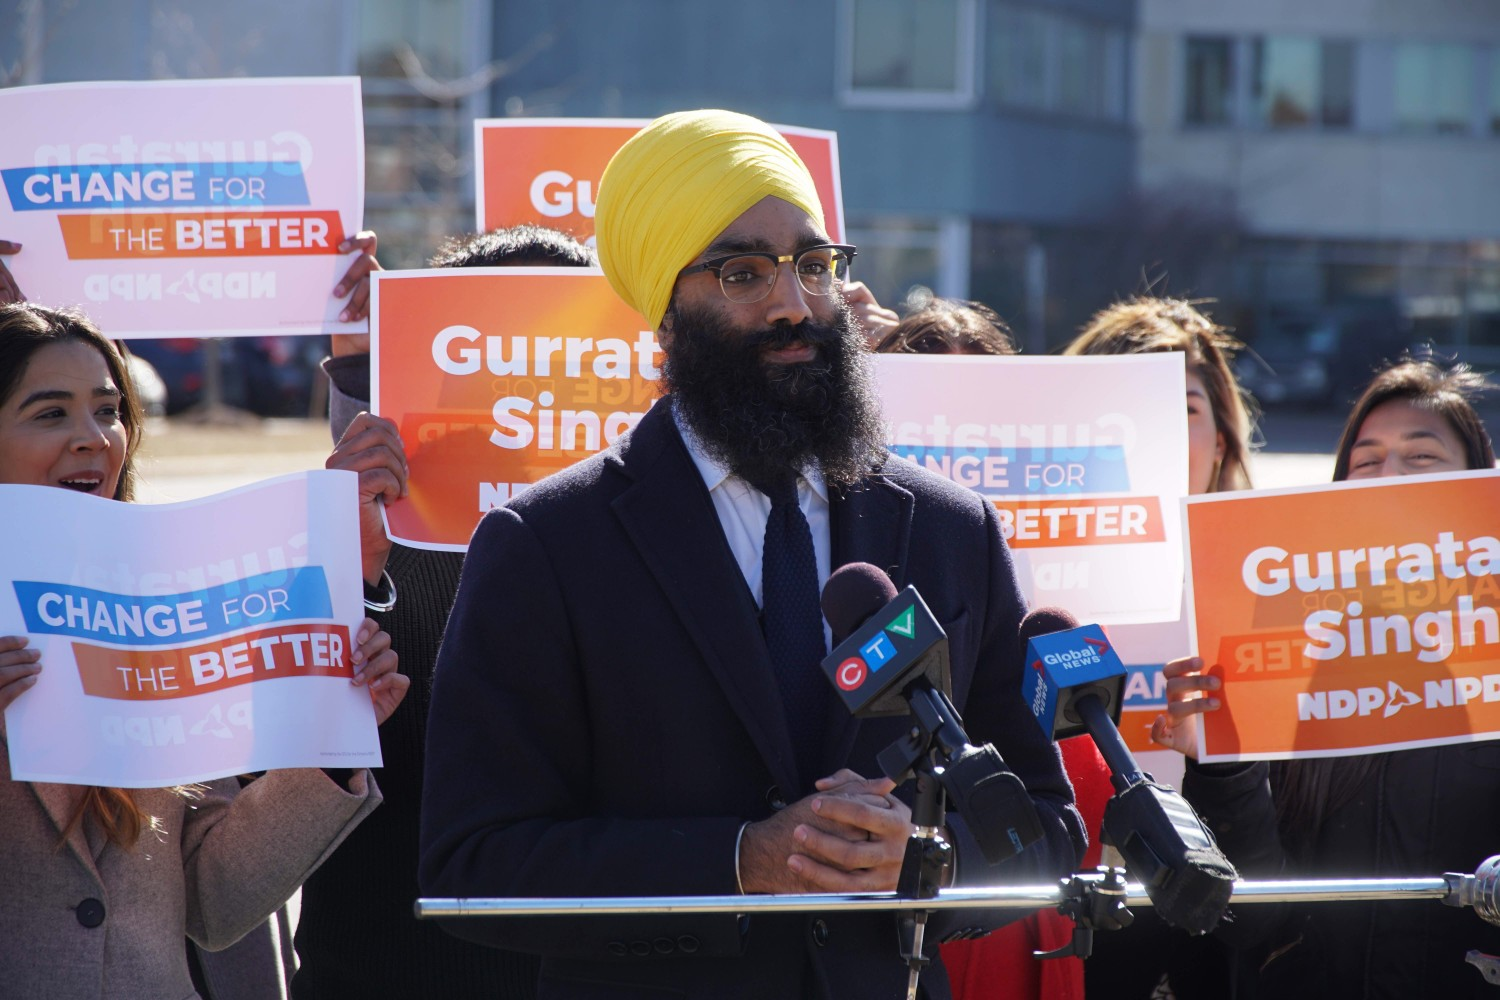 """Brampton MPP fighting to end postal code discrimination pans Conservative government's auto insurance consultation as """"bogus"""""""